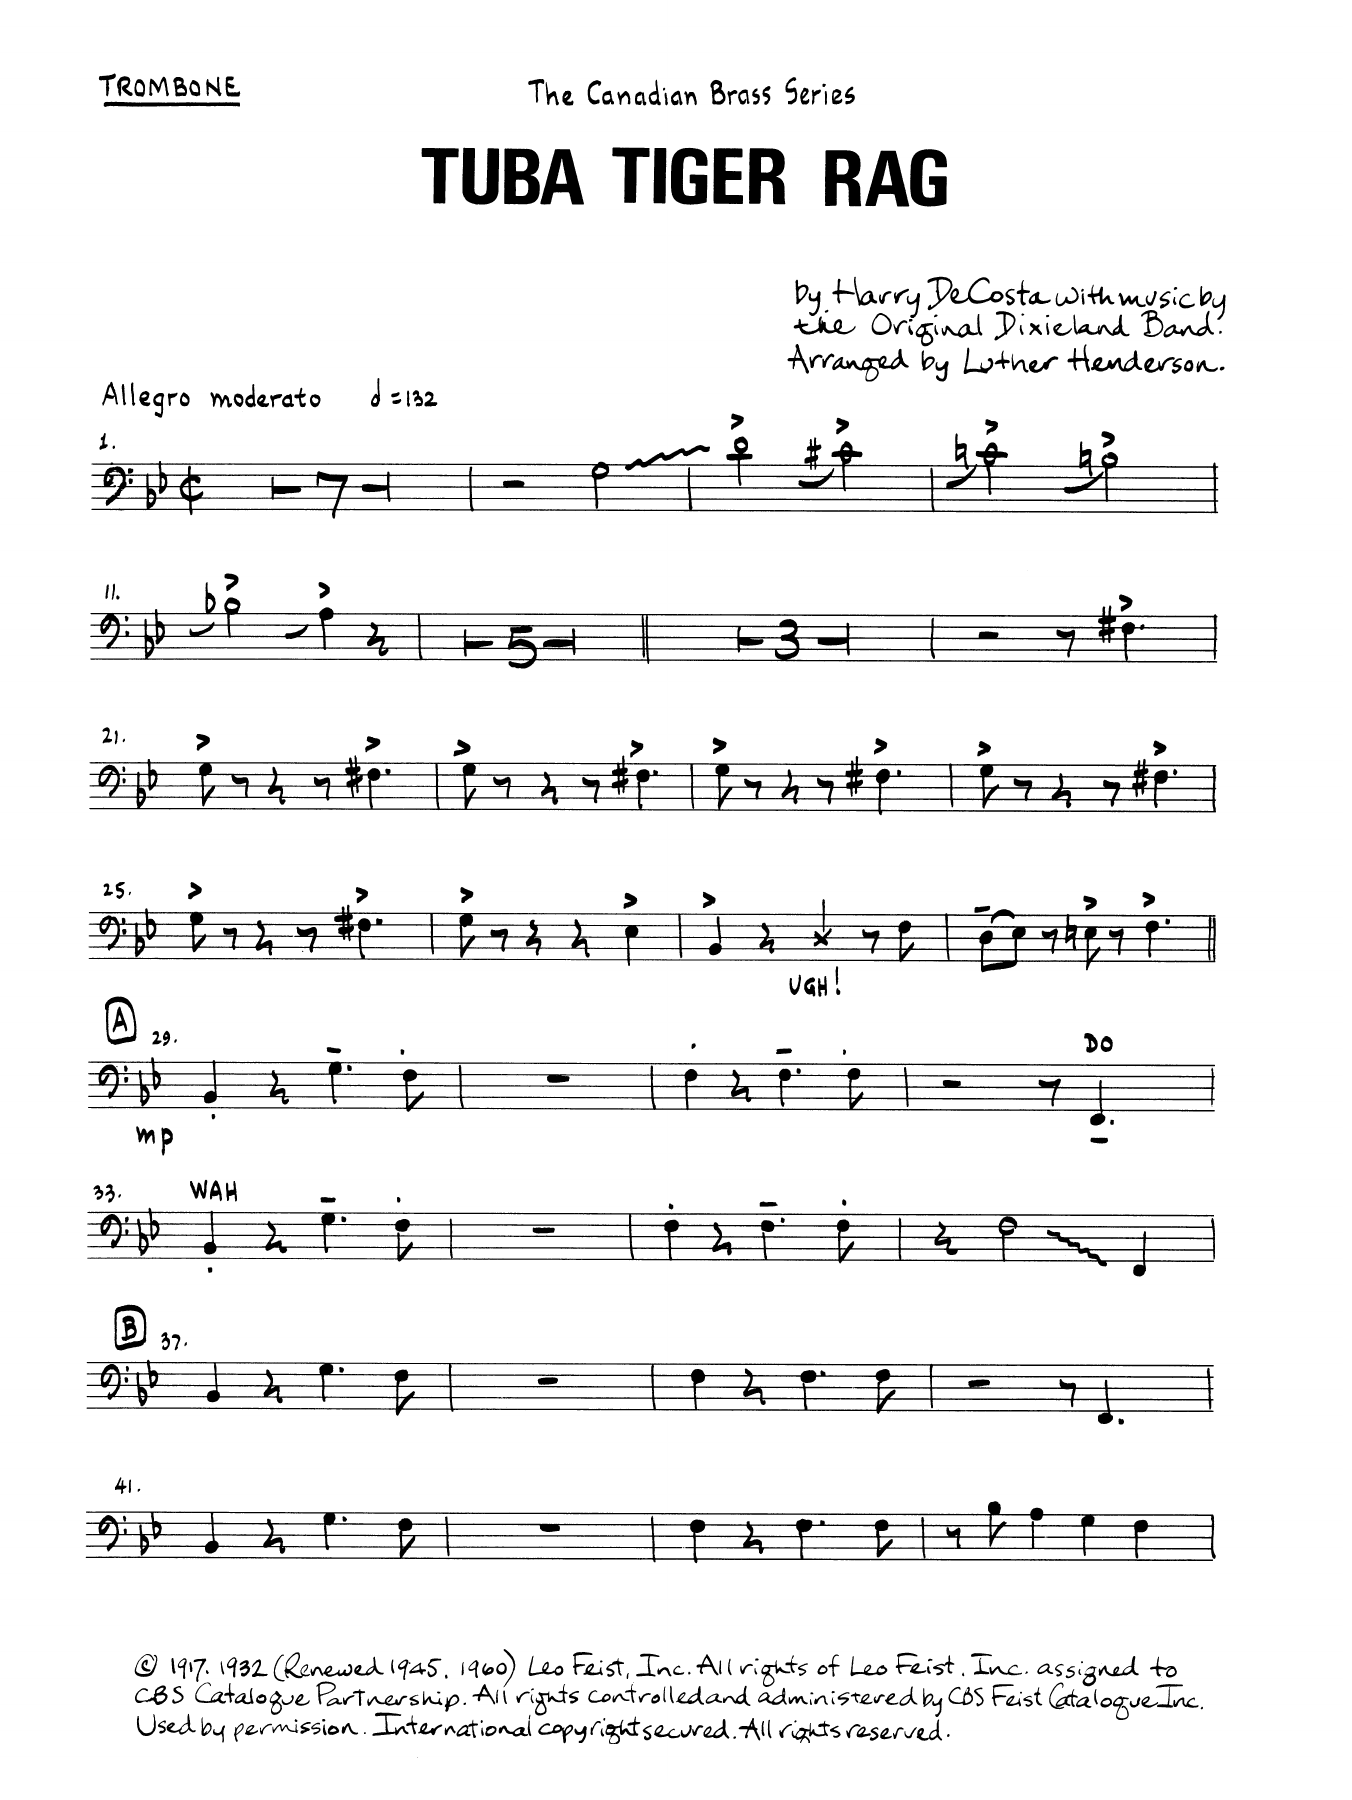 Tuba Tiger Rag - Trombone (B.C.) Digitale Noten